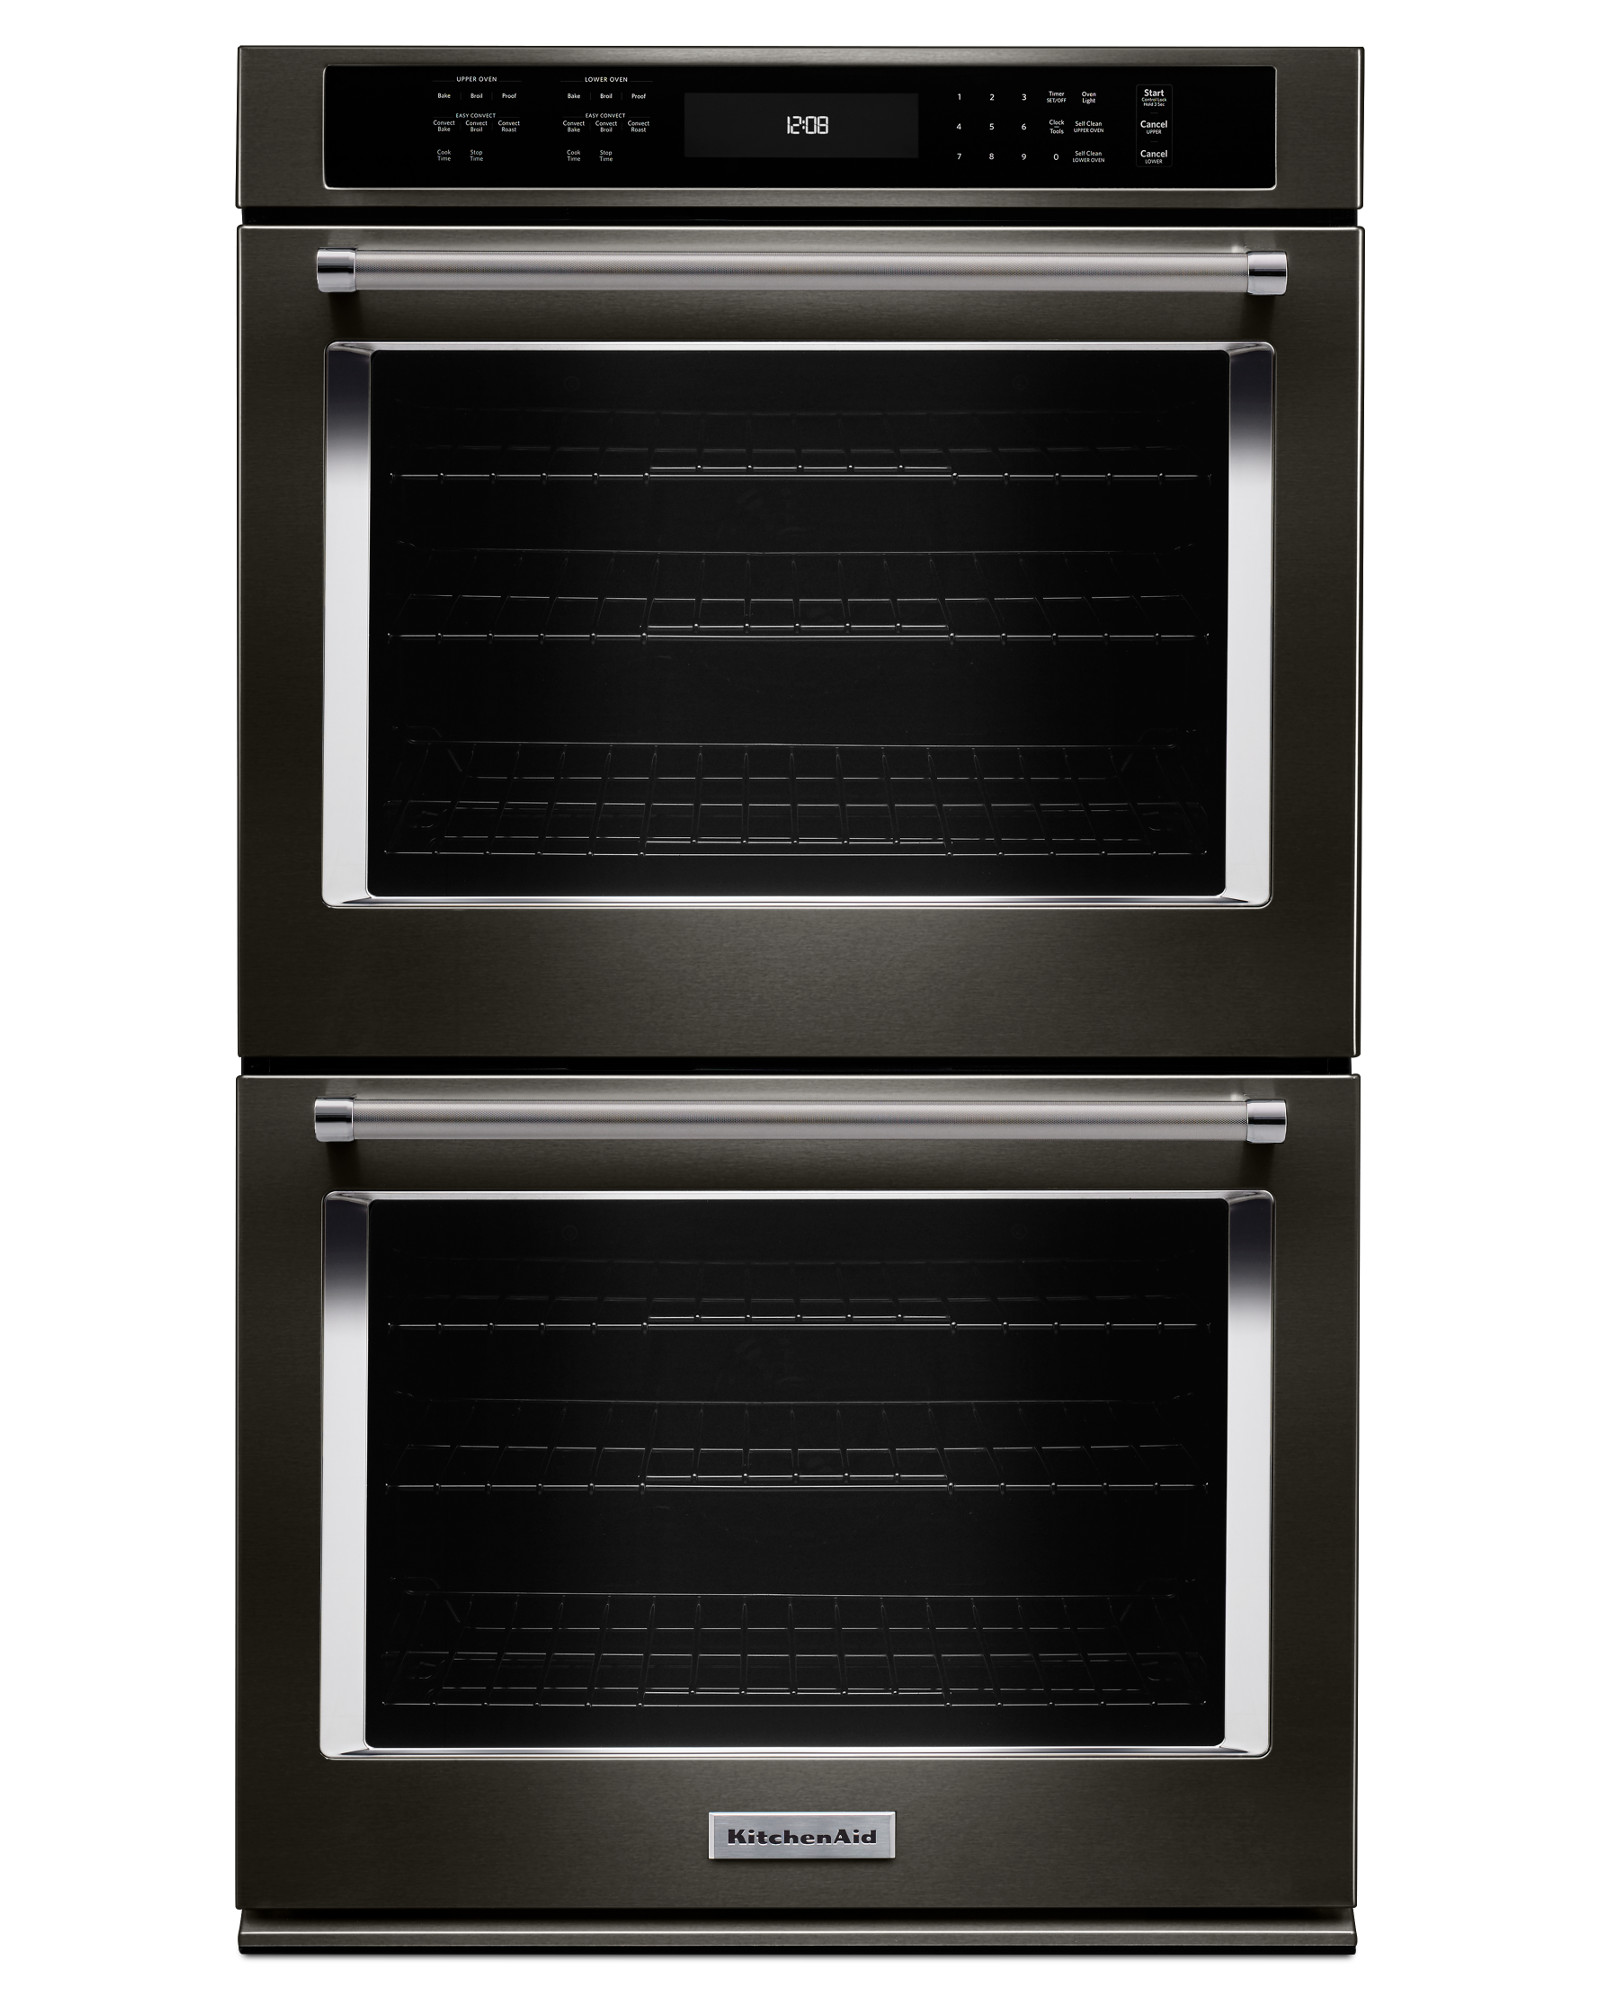 KitchenAid KODE500EBS 30 Double Wall Oven w/ Even-Heat™ True Convection -  Black Stainless Steel